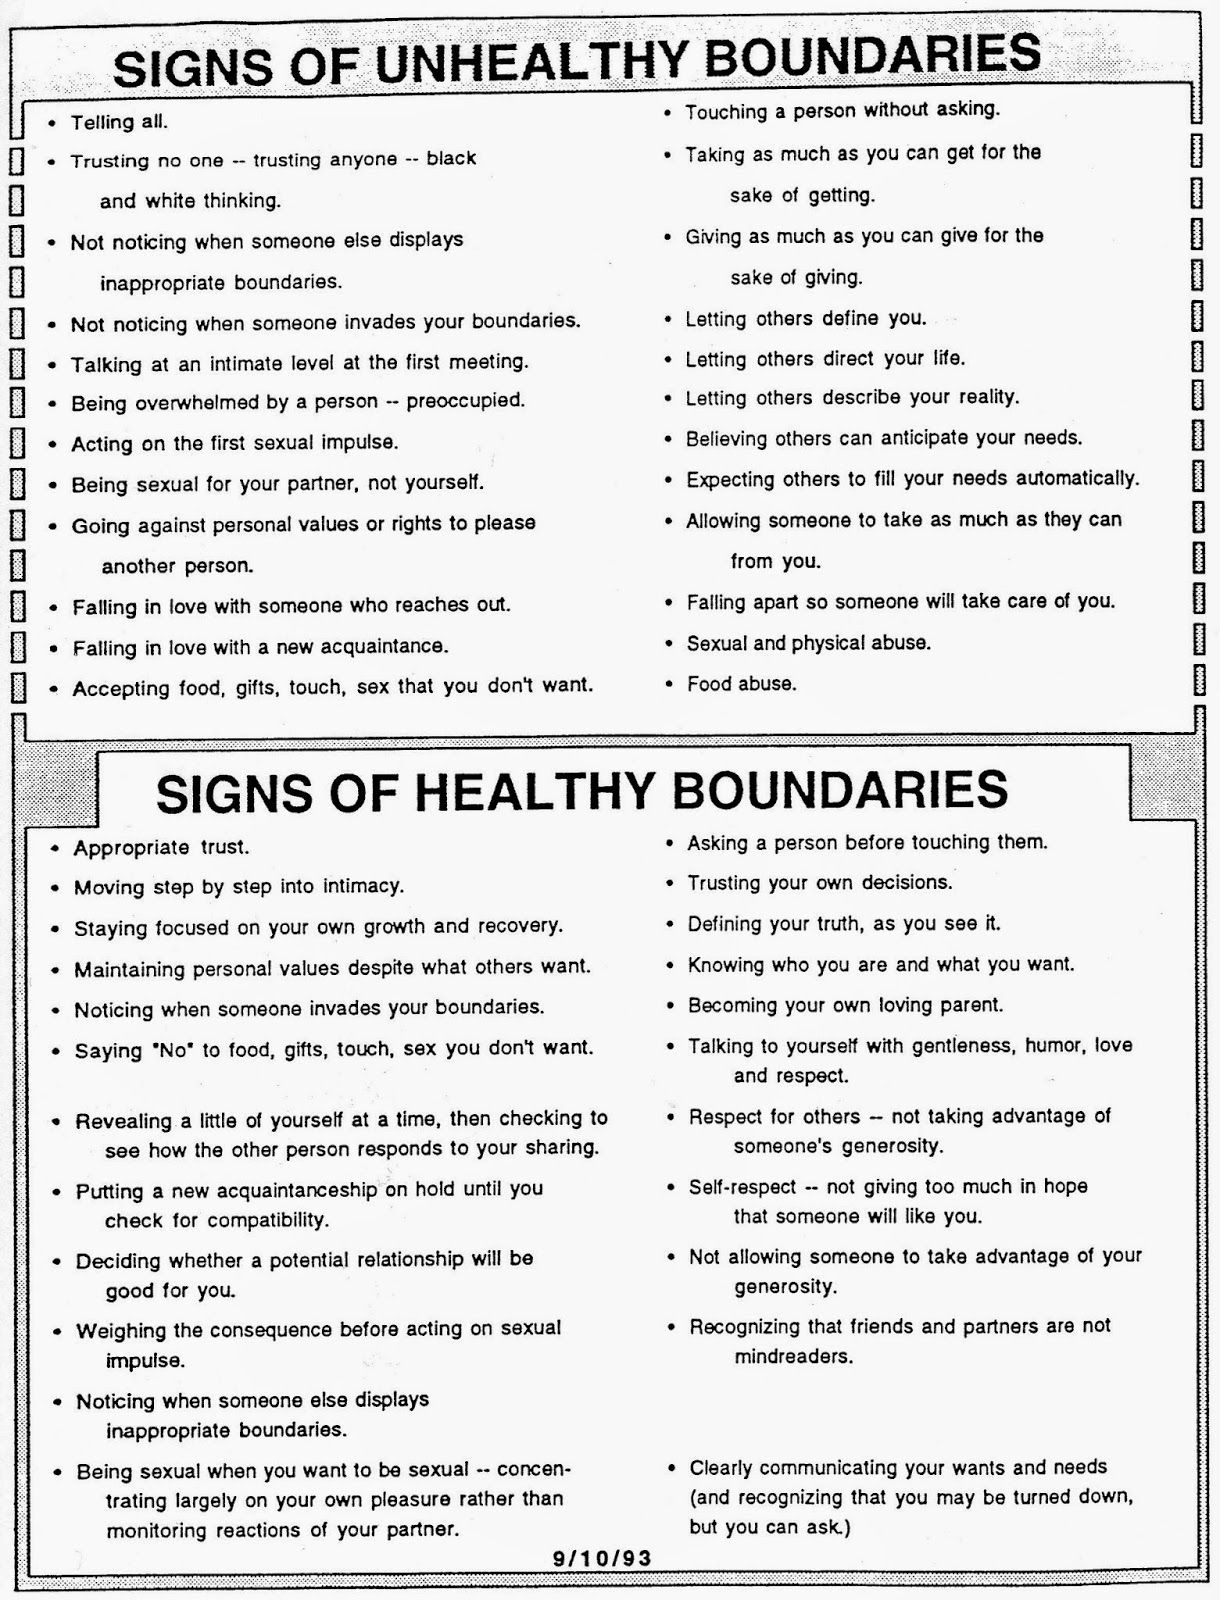 Worksheets Healthy Boundaries Worksheet counseling resources for professionals and parents healthy characteristics of unhealthy boundaries becoming your own loving parent